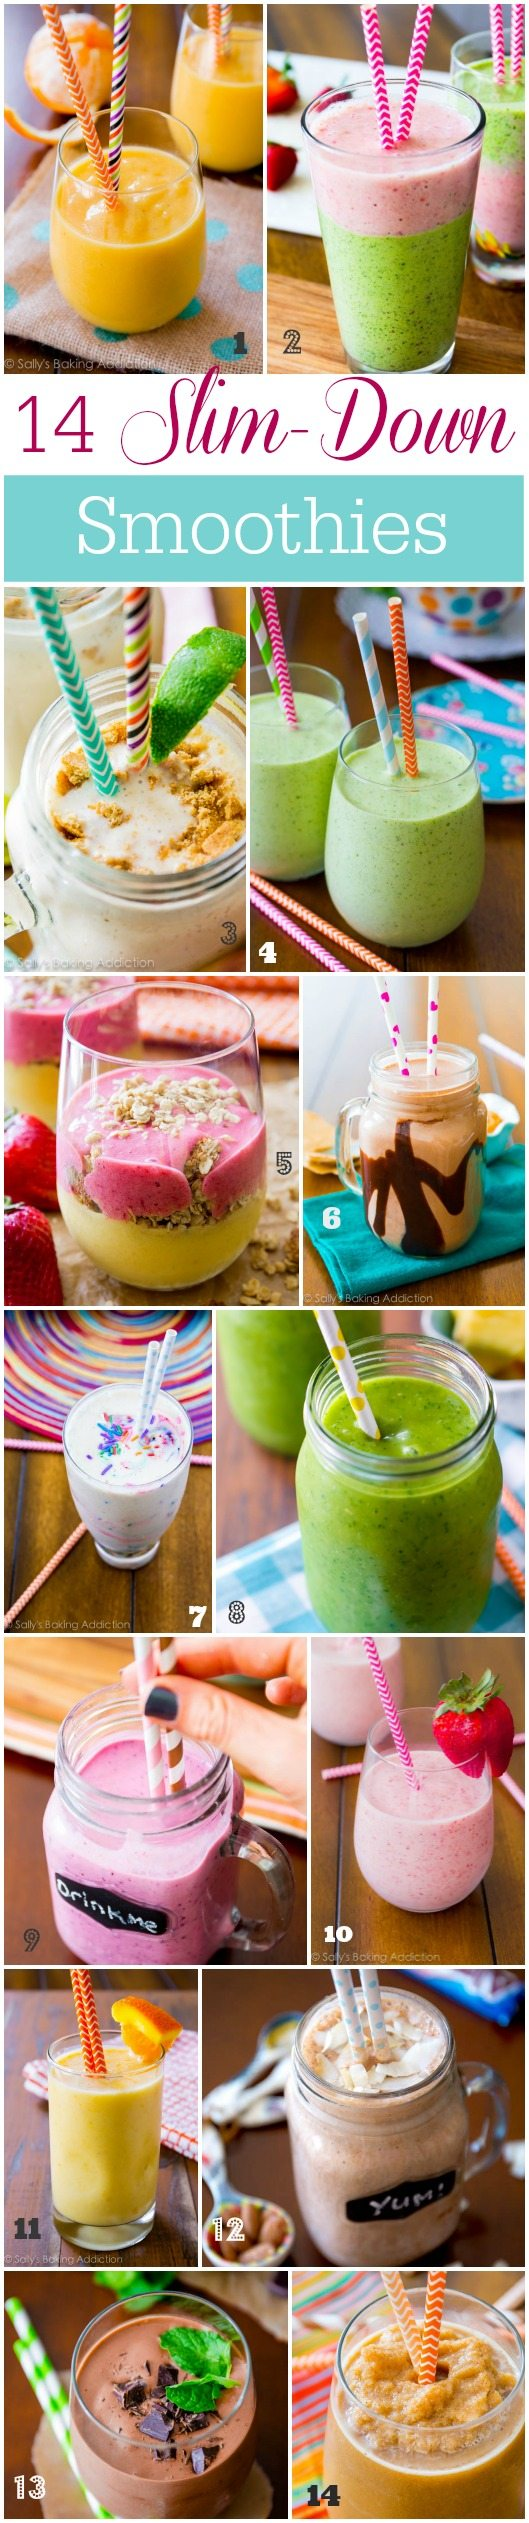 14 Slim-Down Smoothies by sallysbakingaddiction.com